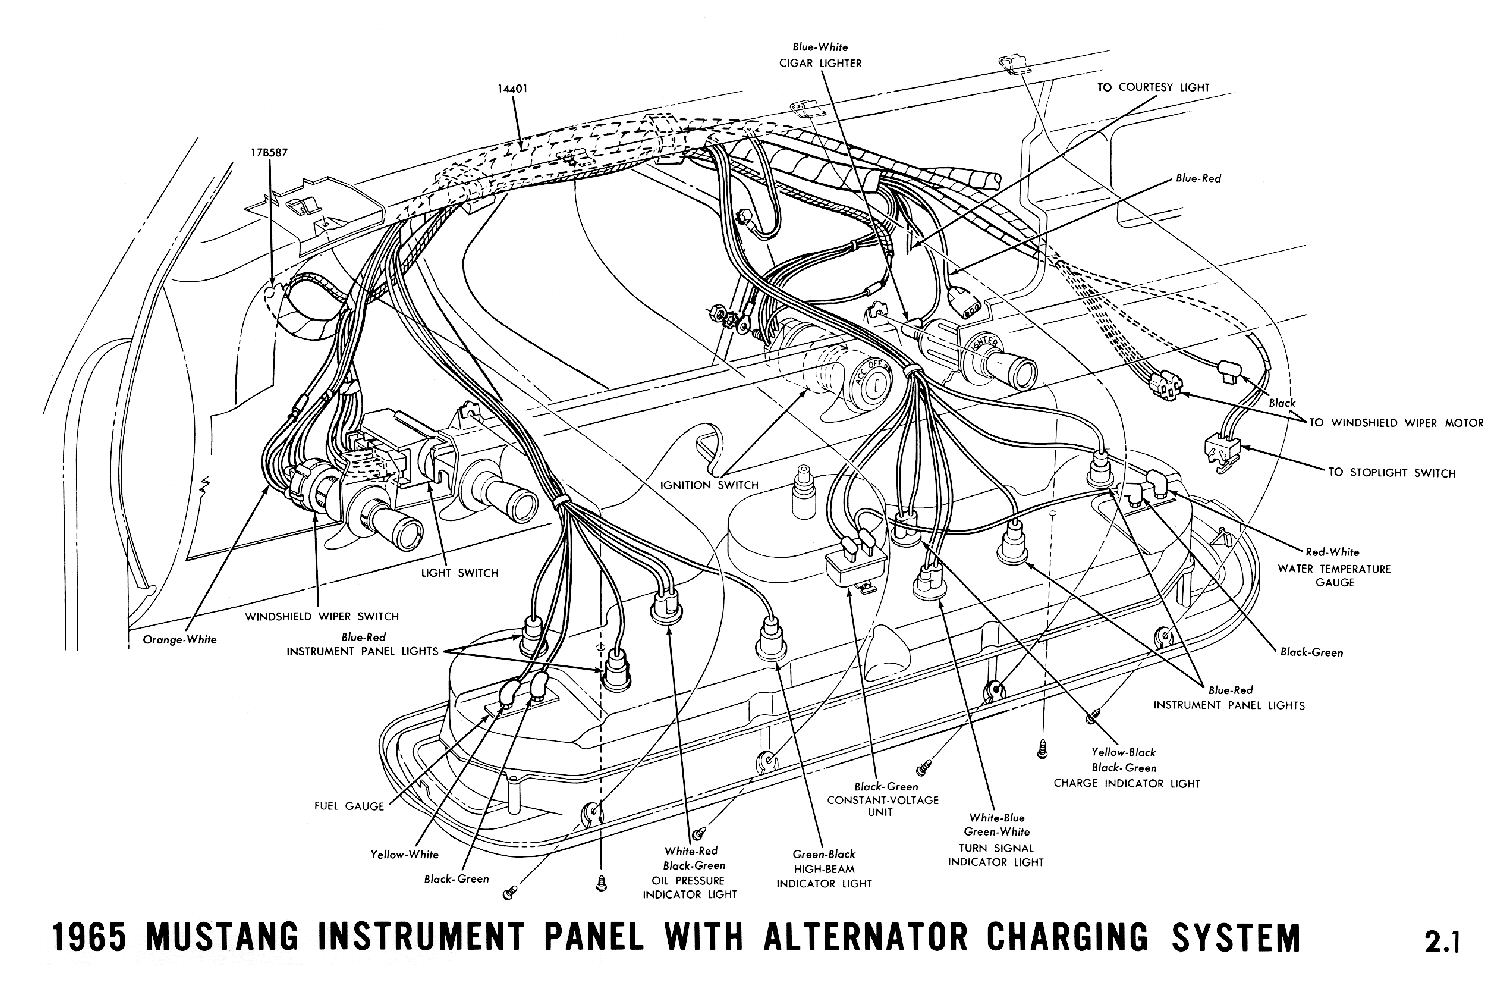 1965a 1965 mustang wiring diagrams average joe restoration 1965 mustang turn signal wiring diagram at bakdesigns.co